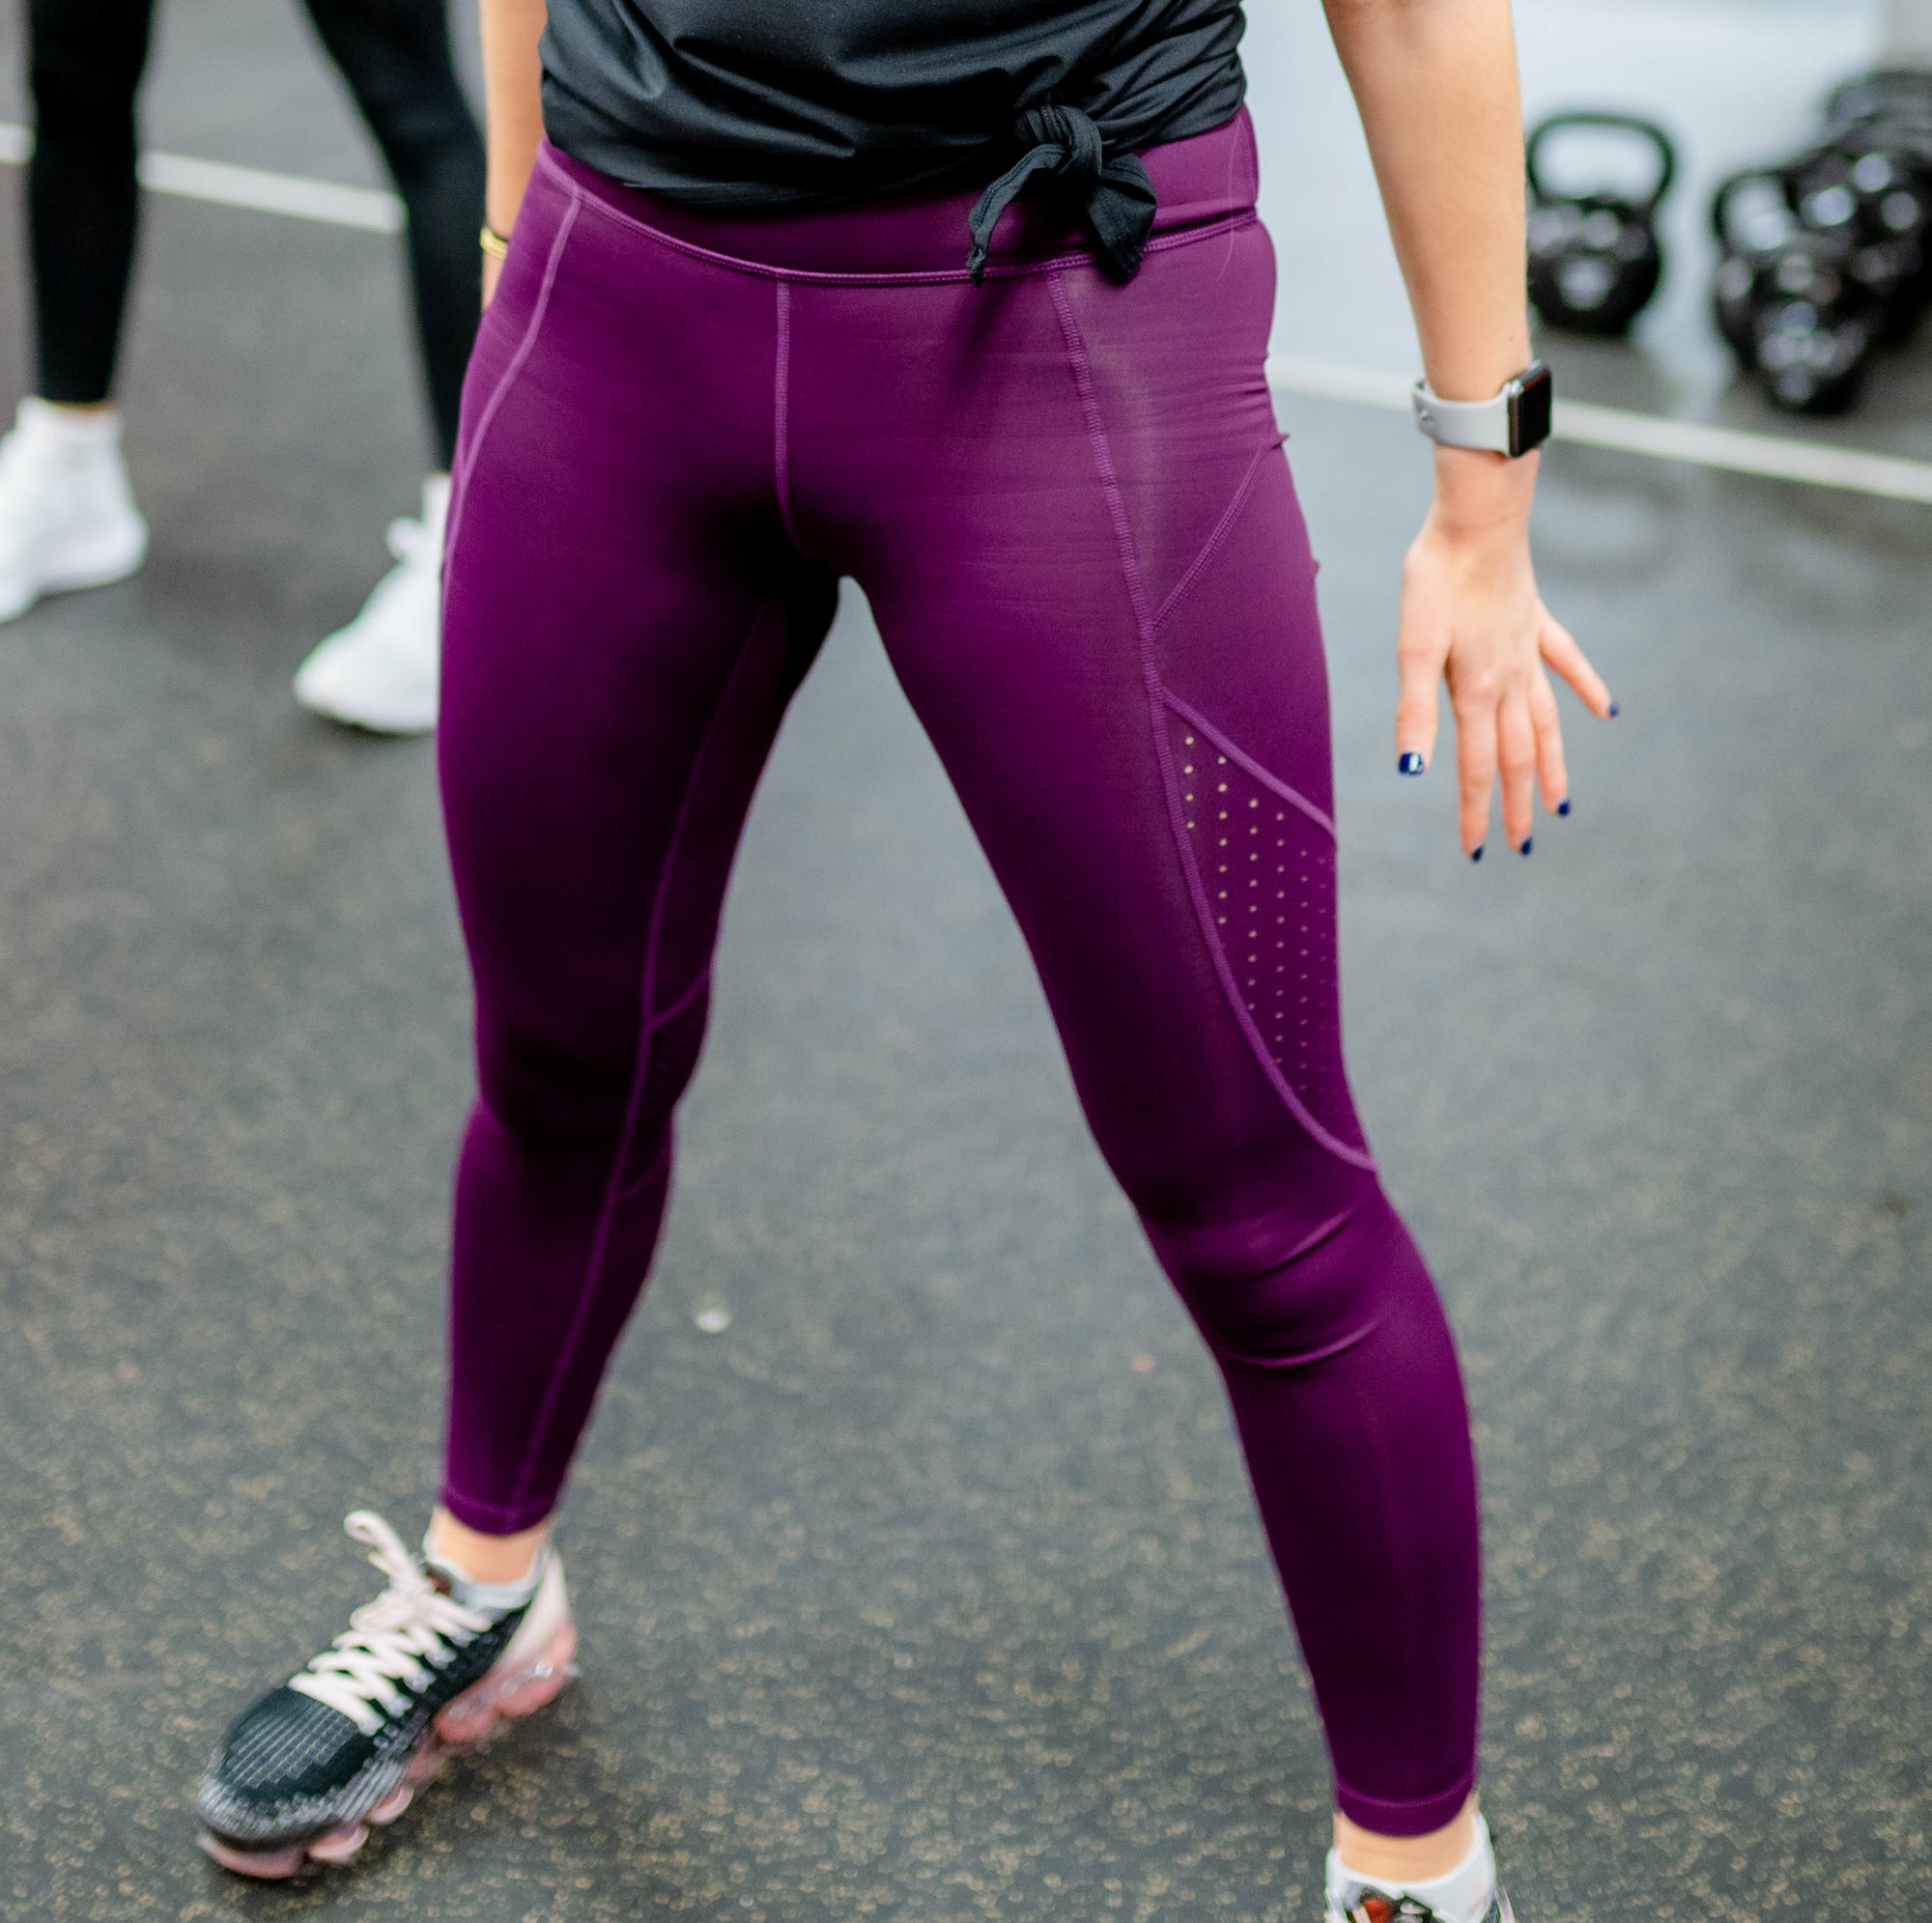 The Closet Inc Purple Spandex Tights